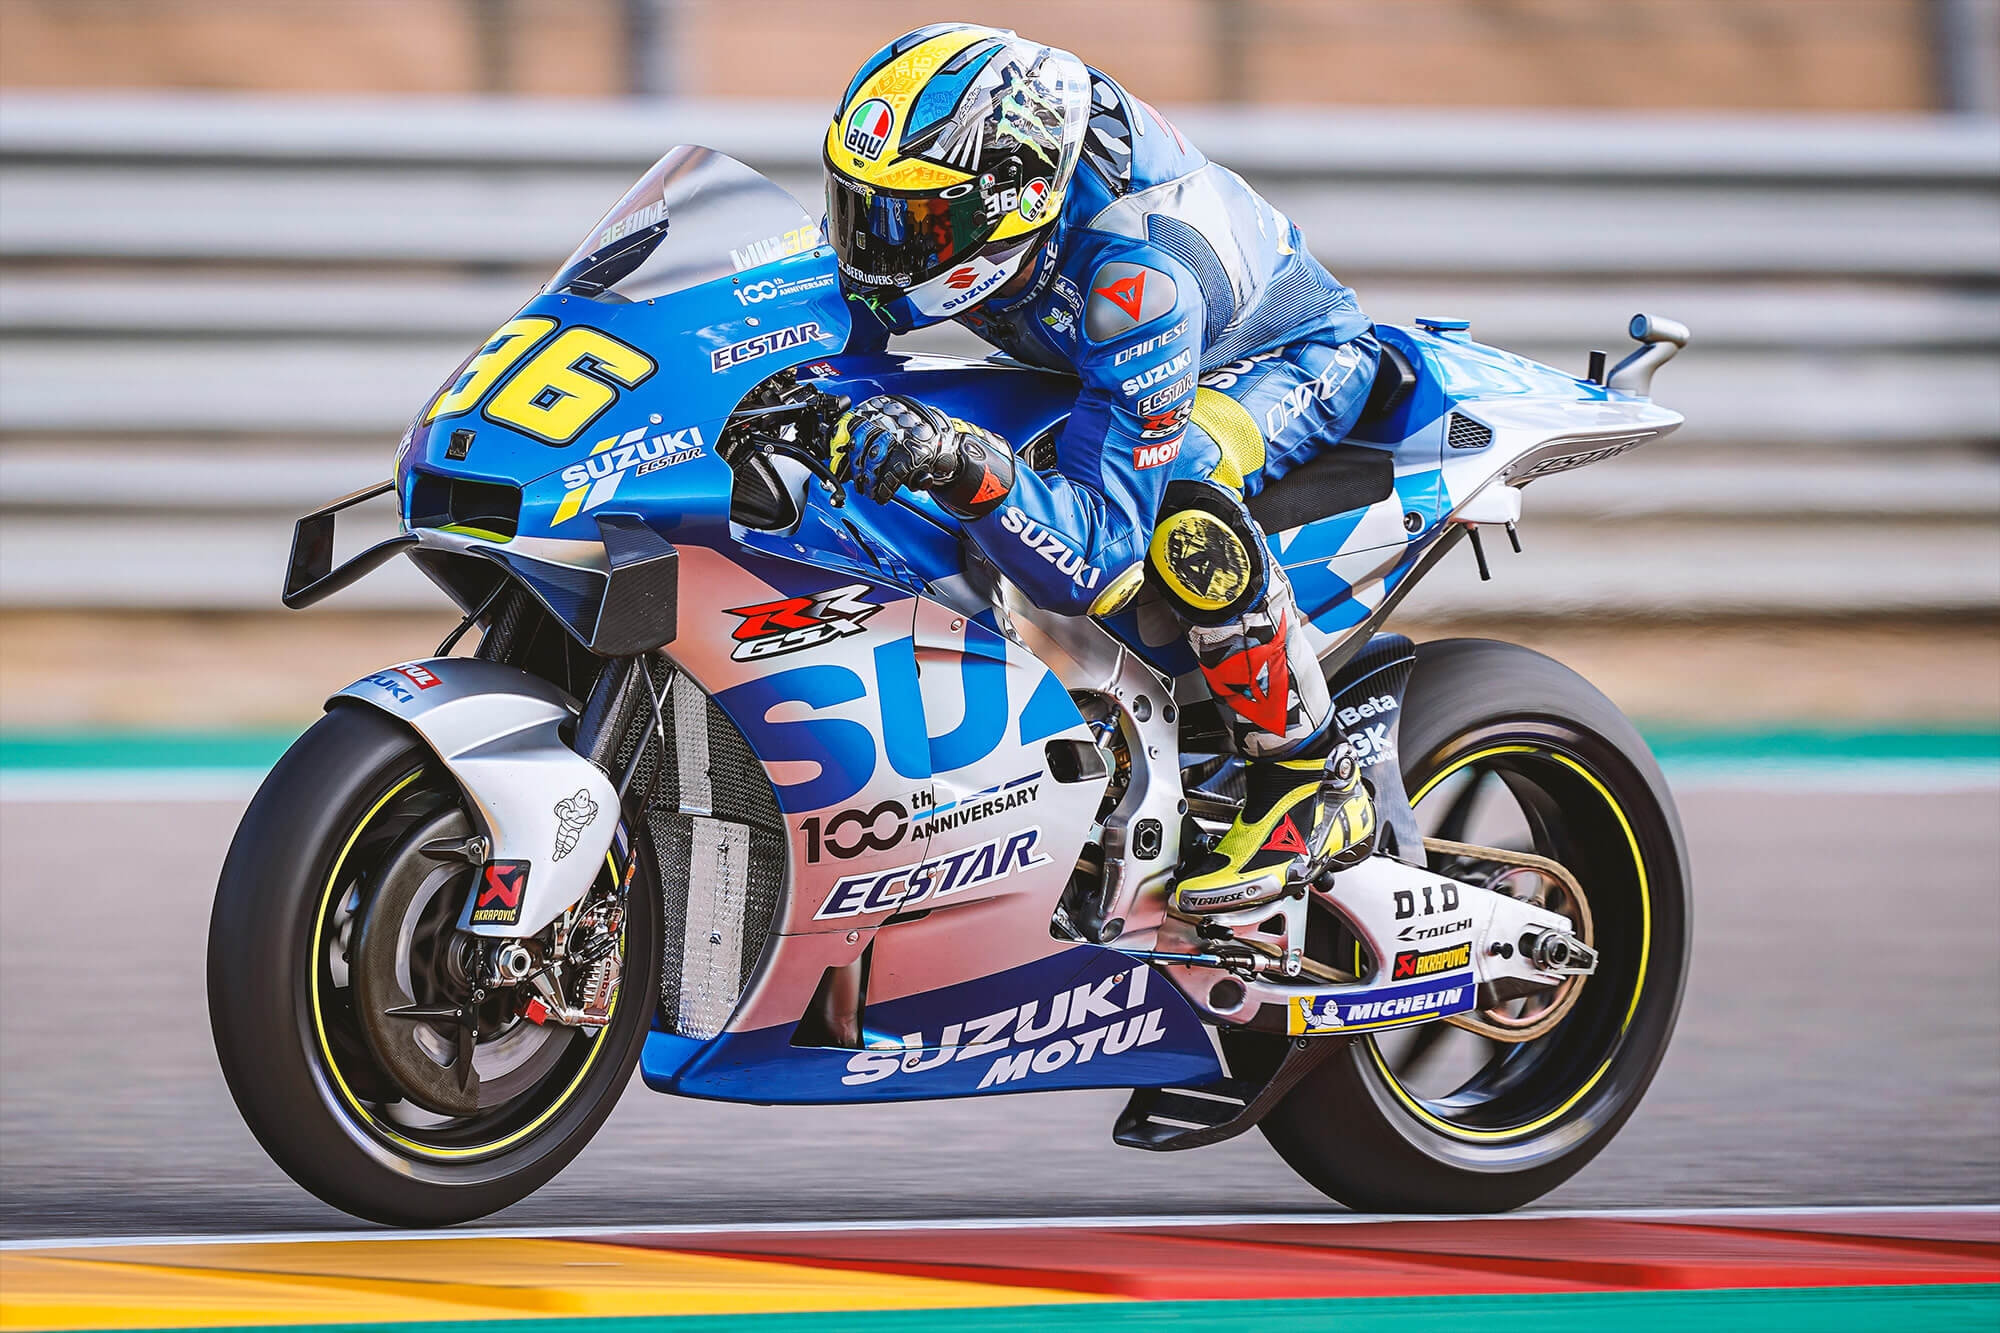 MotoGP Joan Mir riding on track